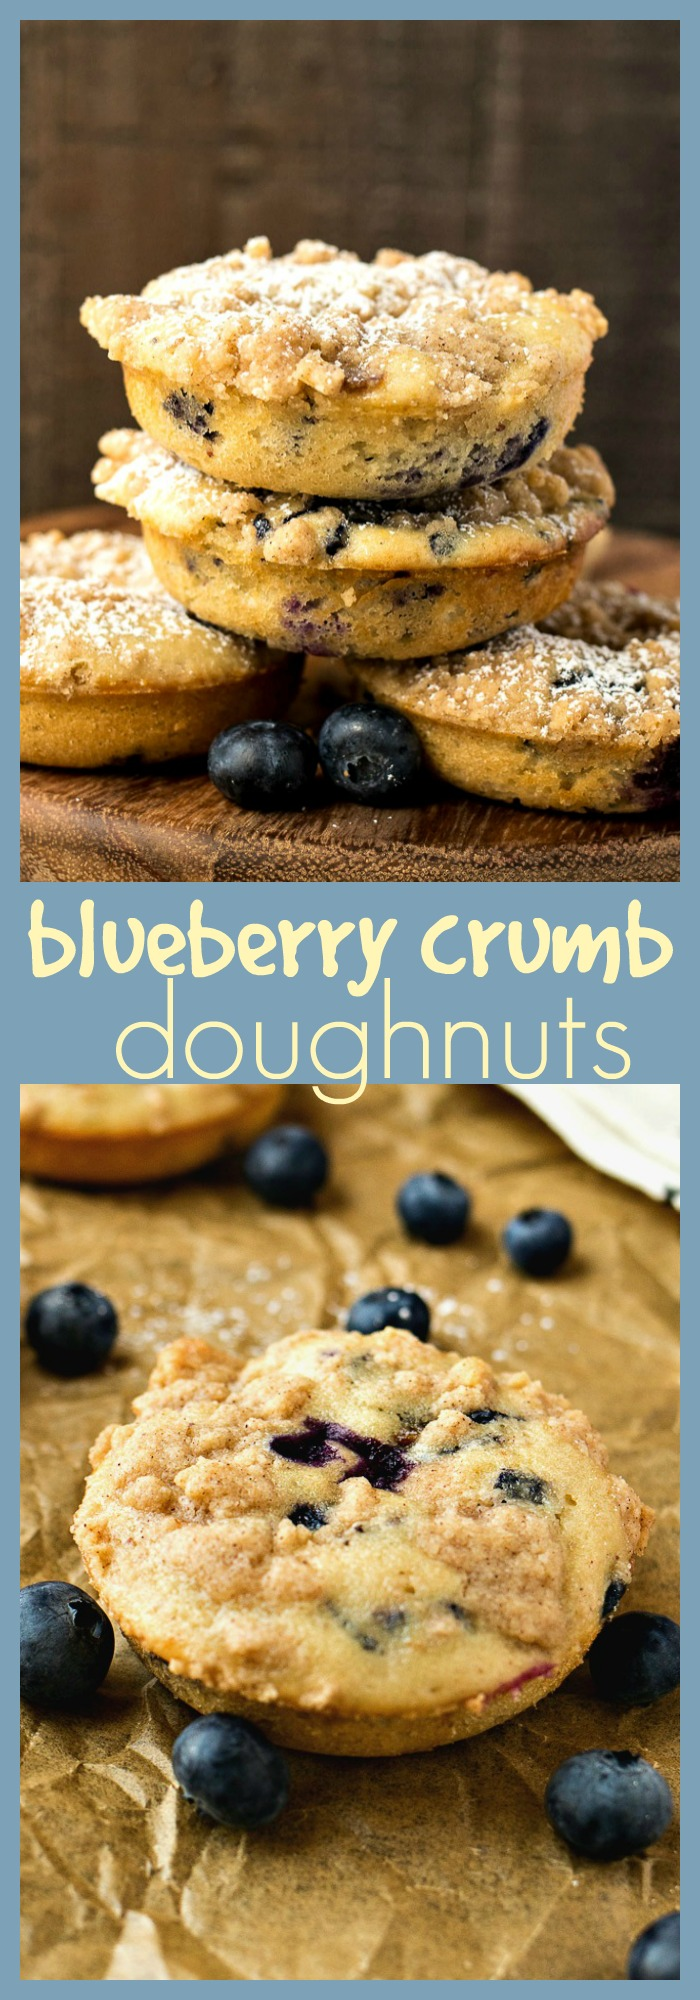 Blueberry Crumb Doughnuts photo collage